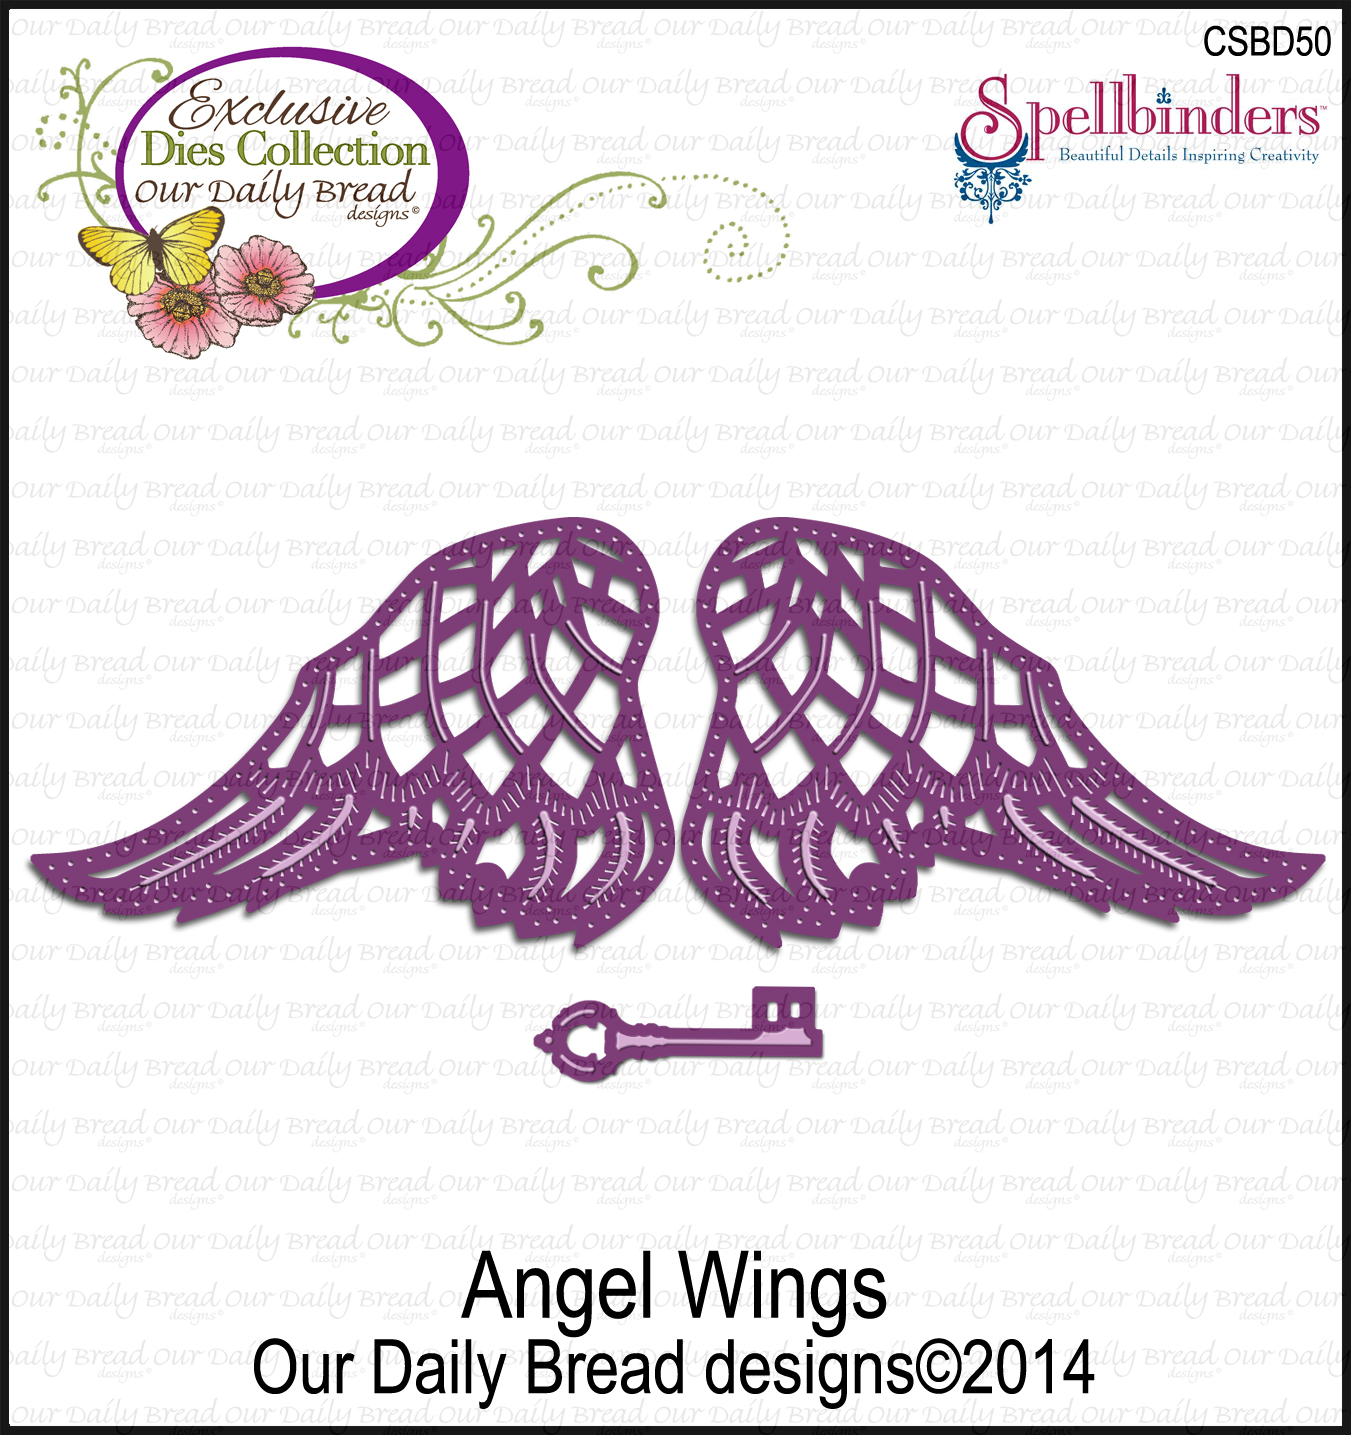 http://www.ourdailybreaddesigns.com/index.php/csbd50-angel-wings-dies.html